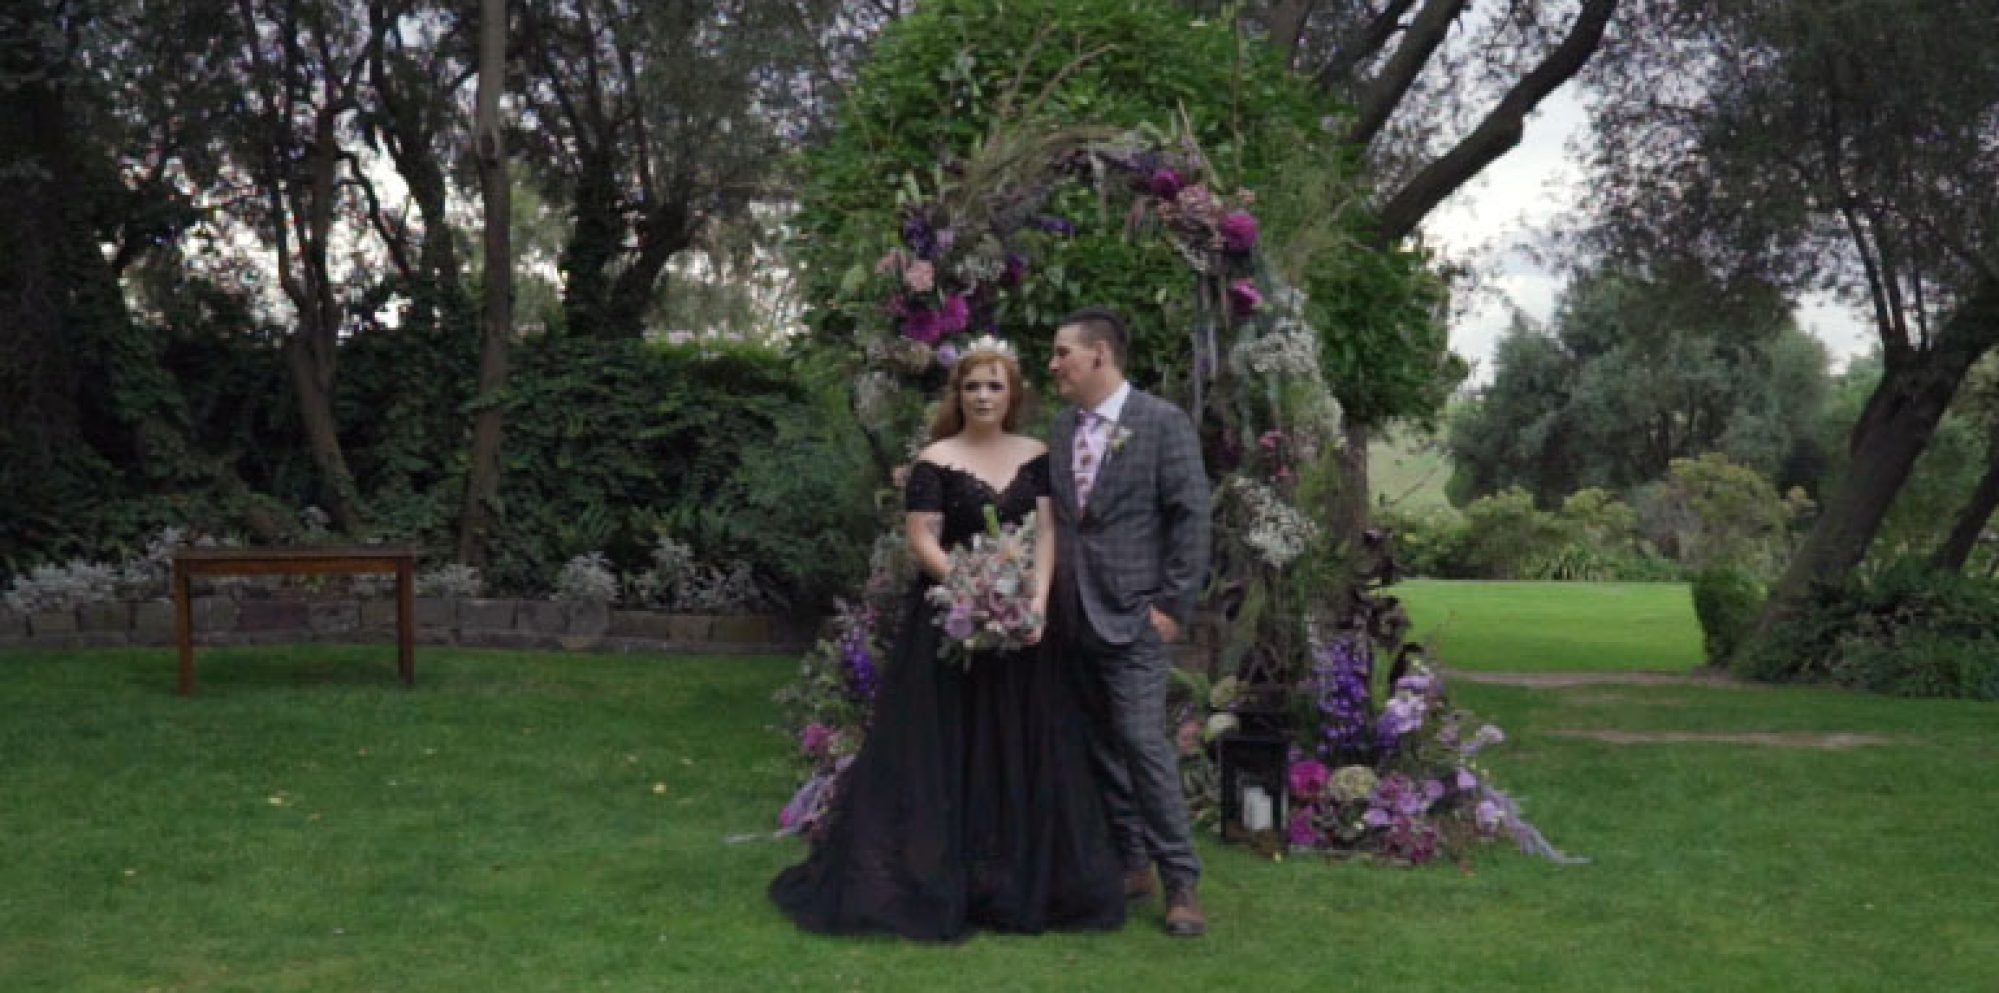 Emalee & jack @ overnewton castle wedding video